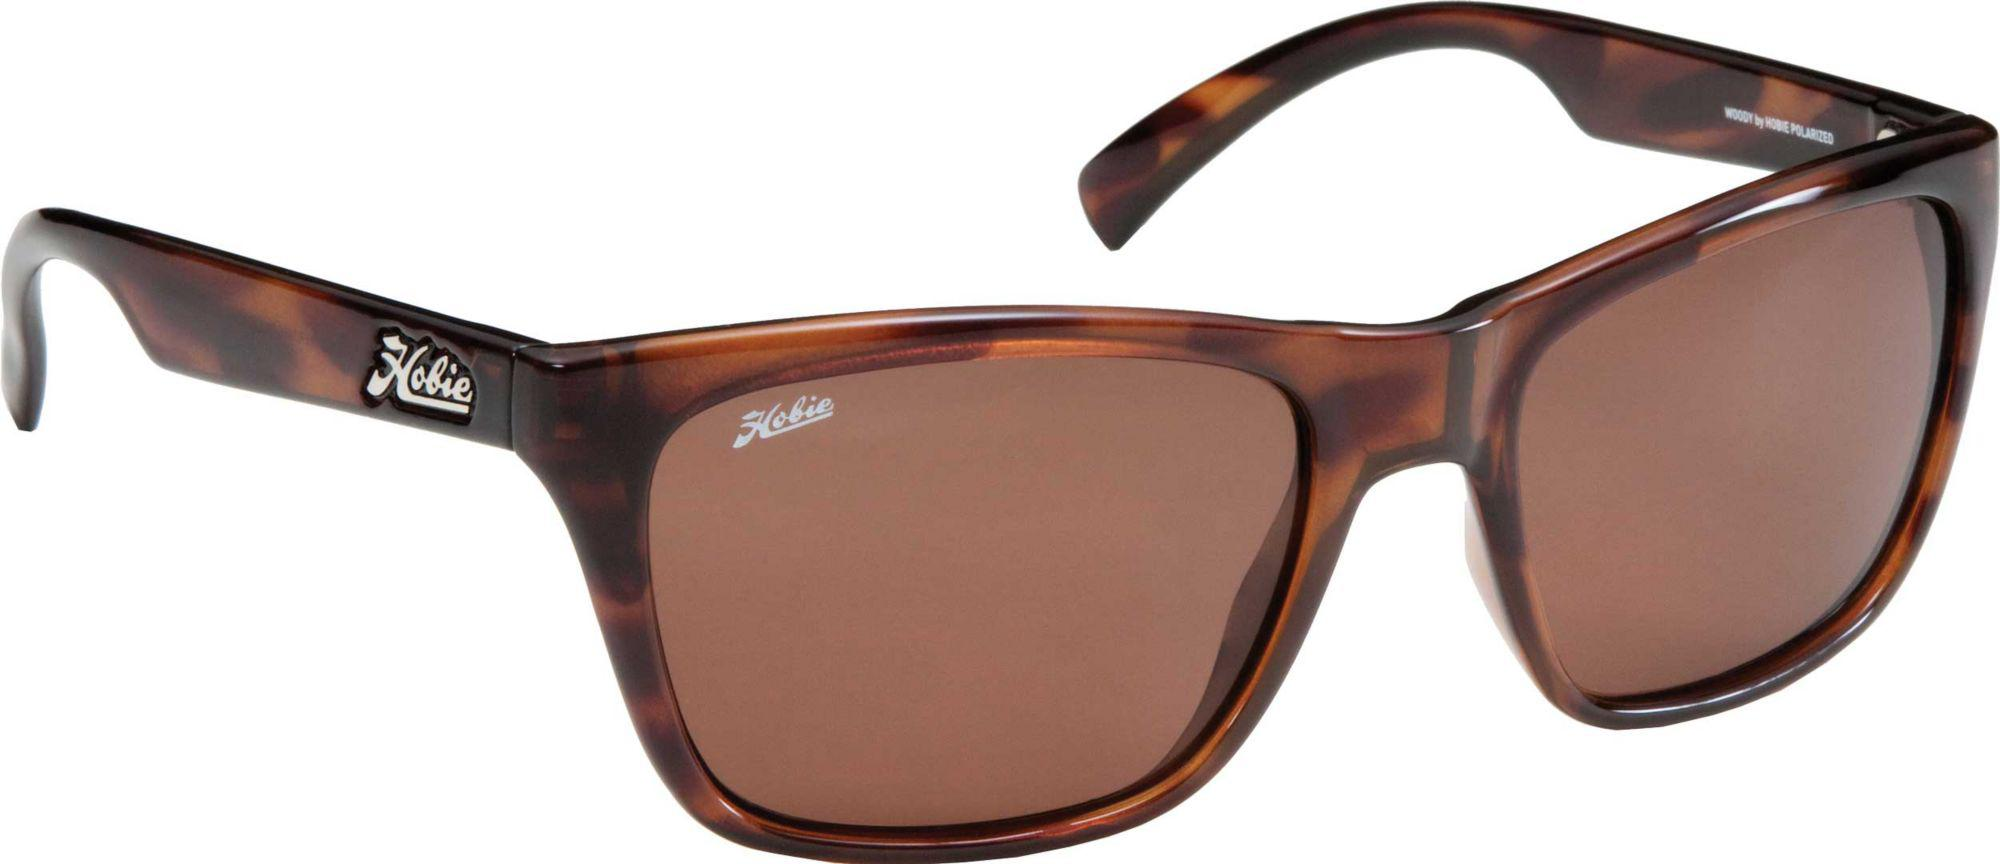 b9f9659c4d Lyst - Hobie Woody Polarized Sunglasses in Brown for Men